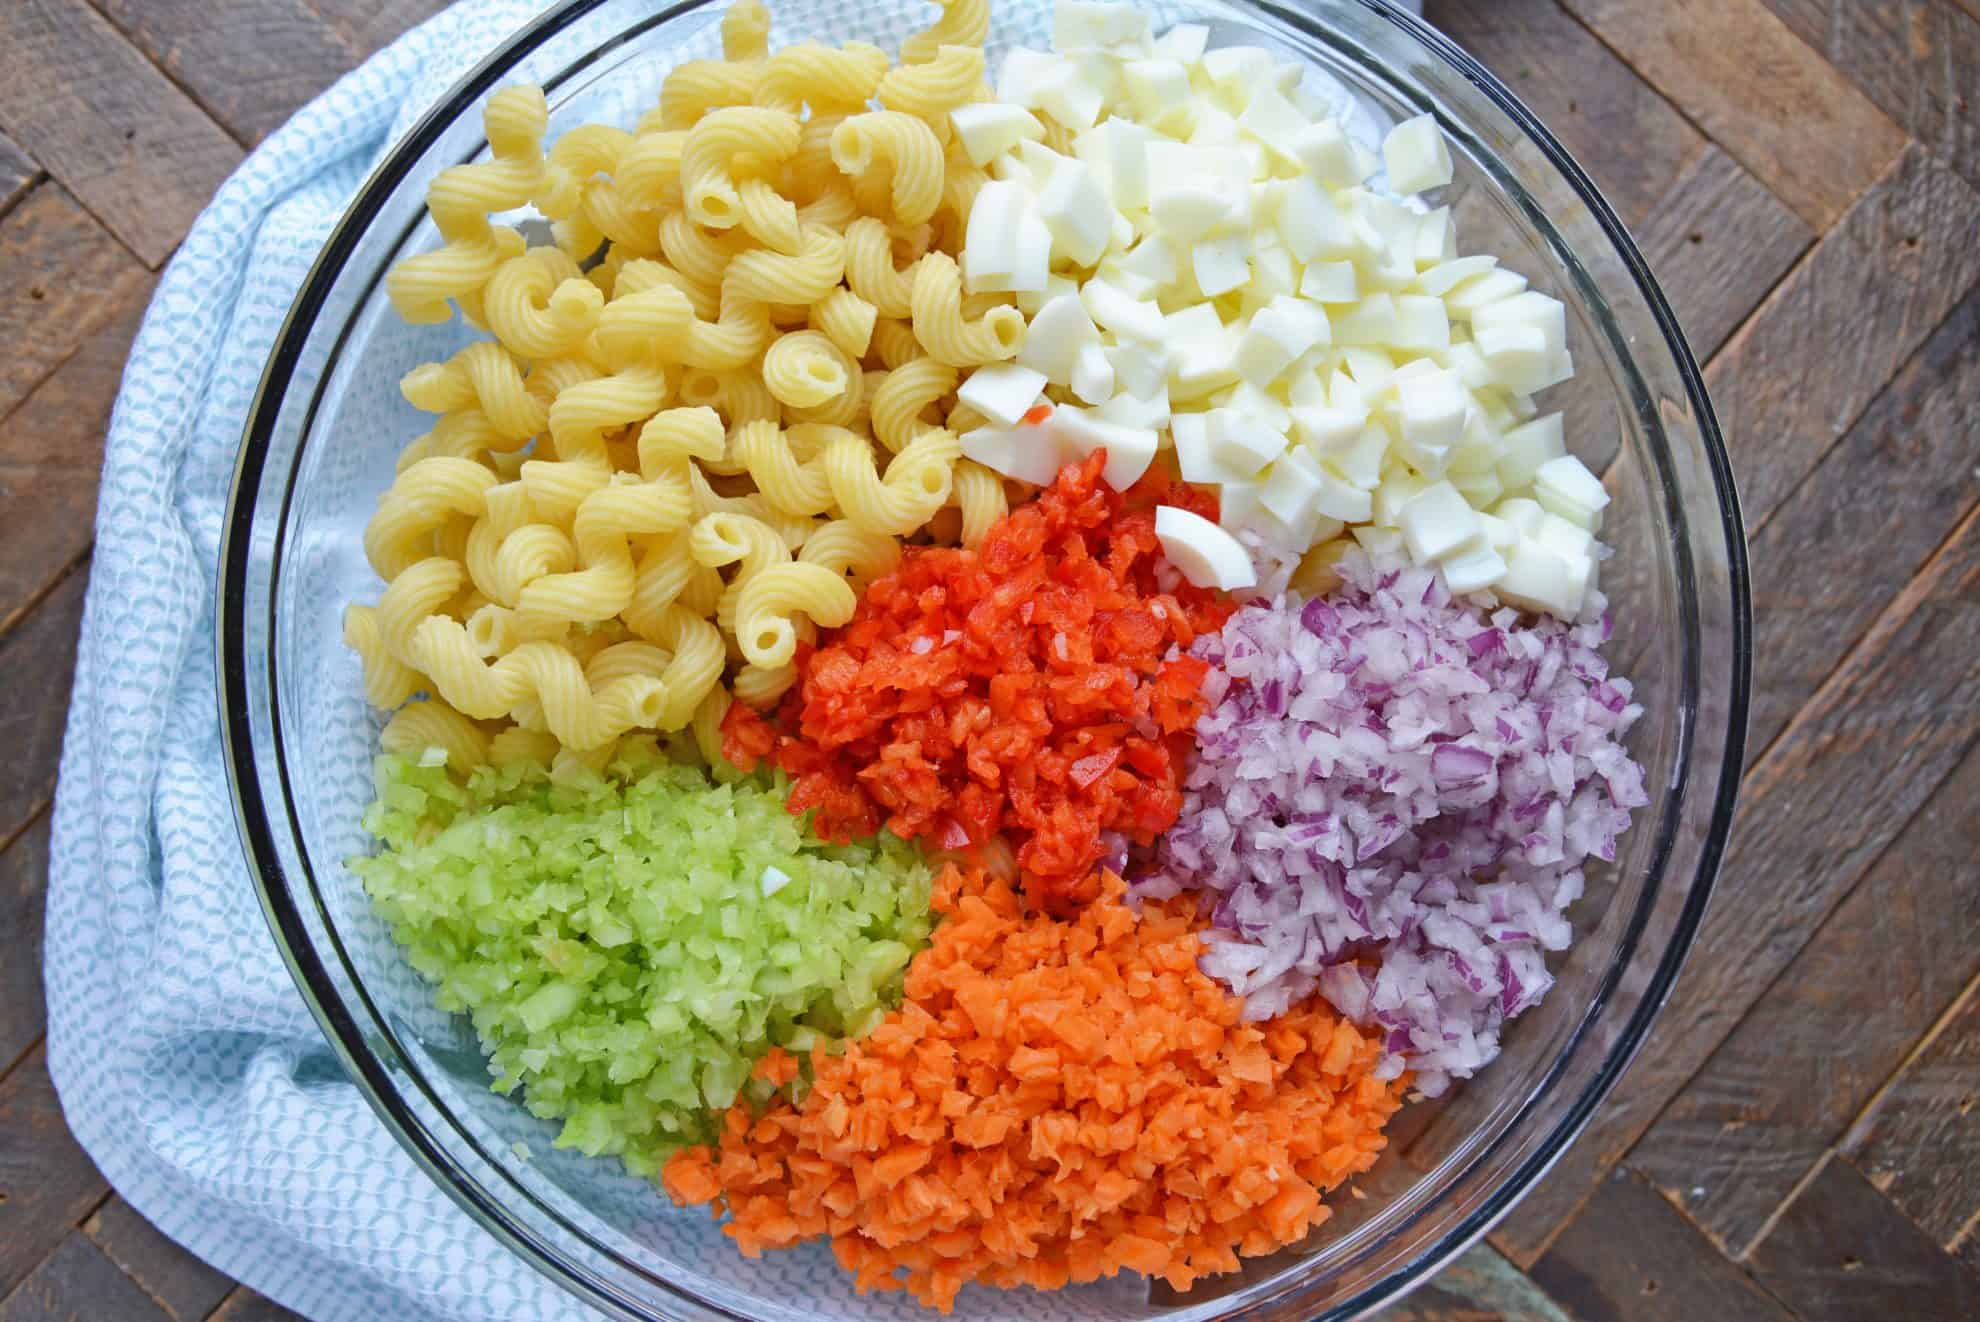 Ingredients for macaroni salad